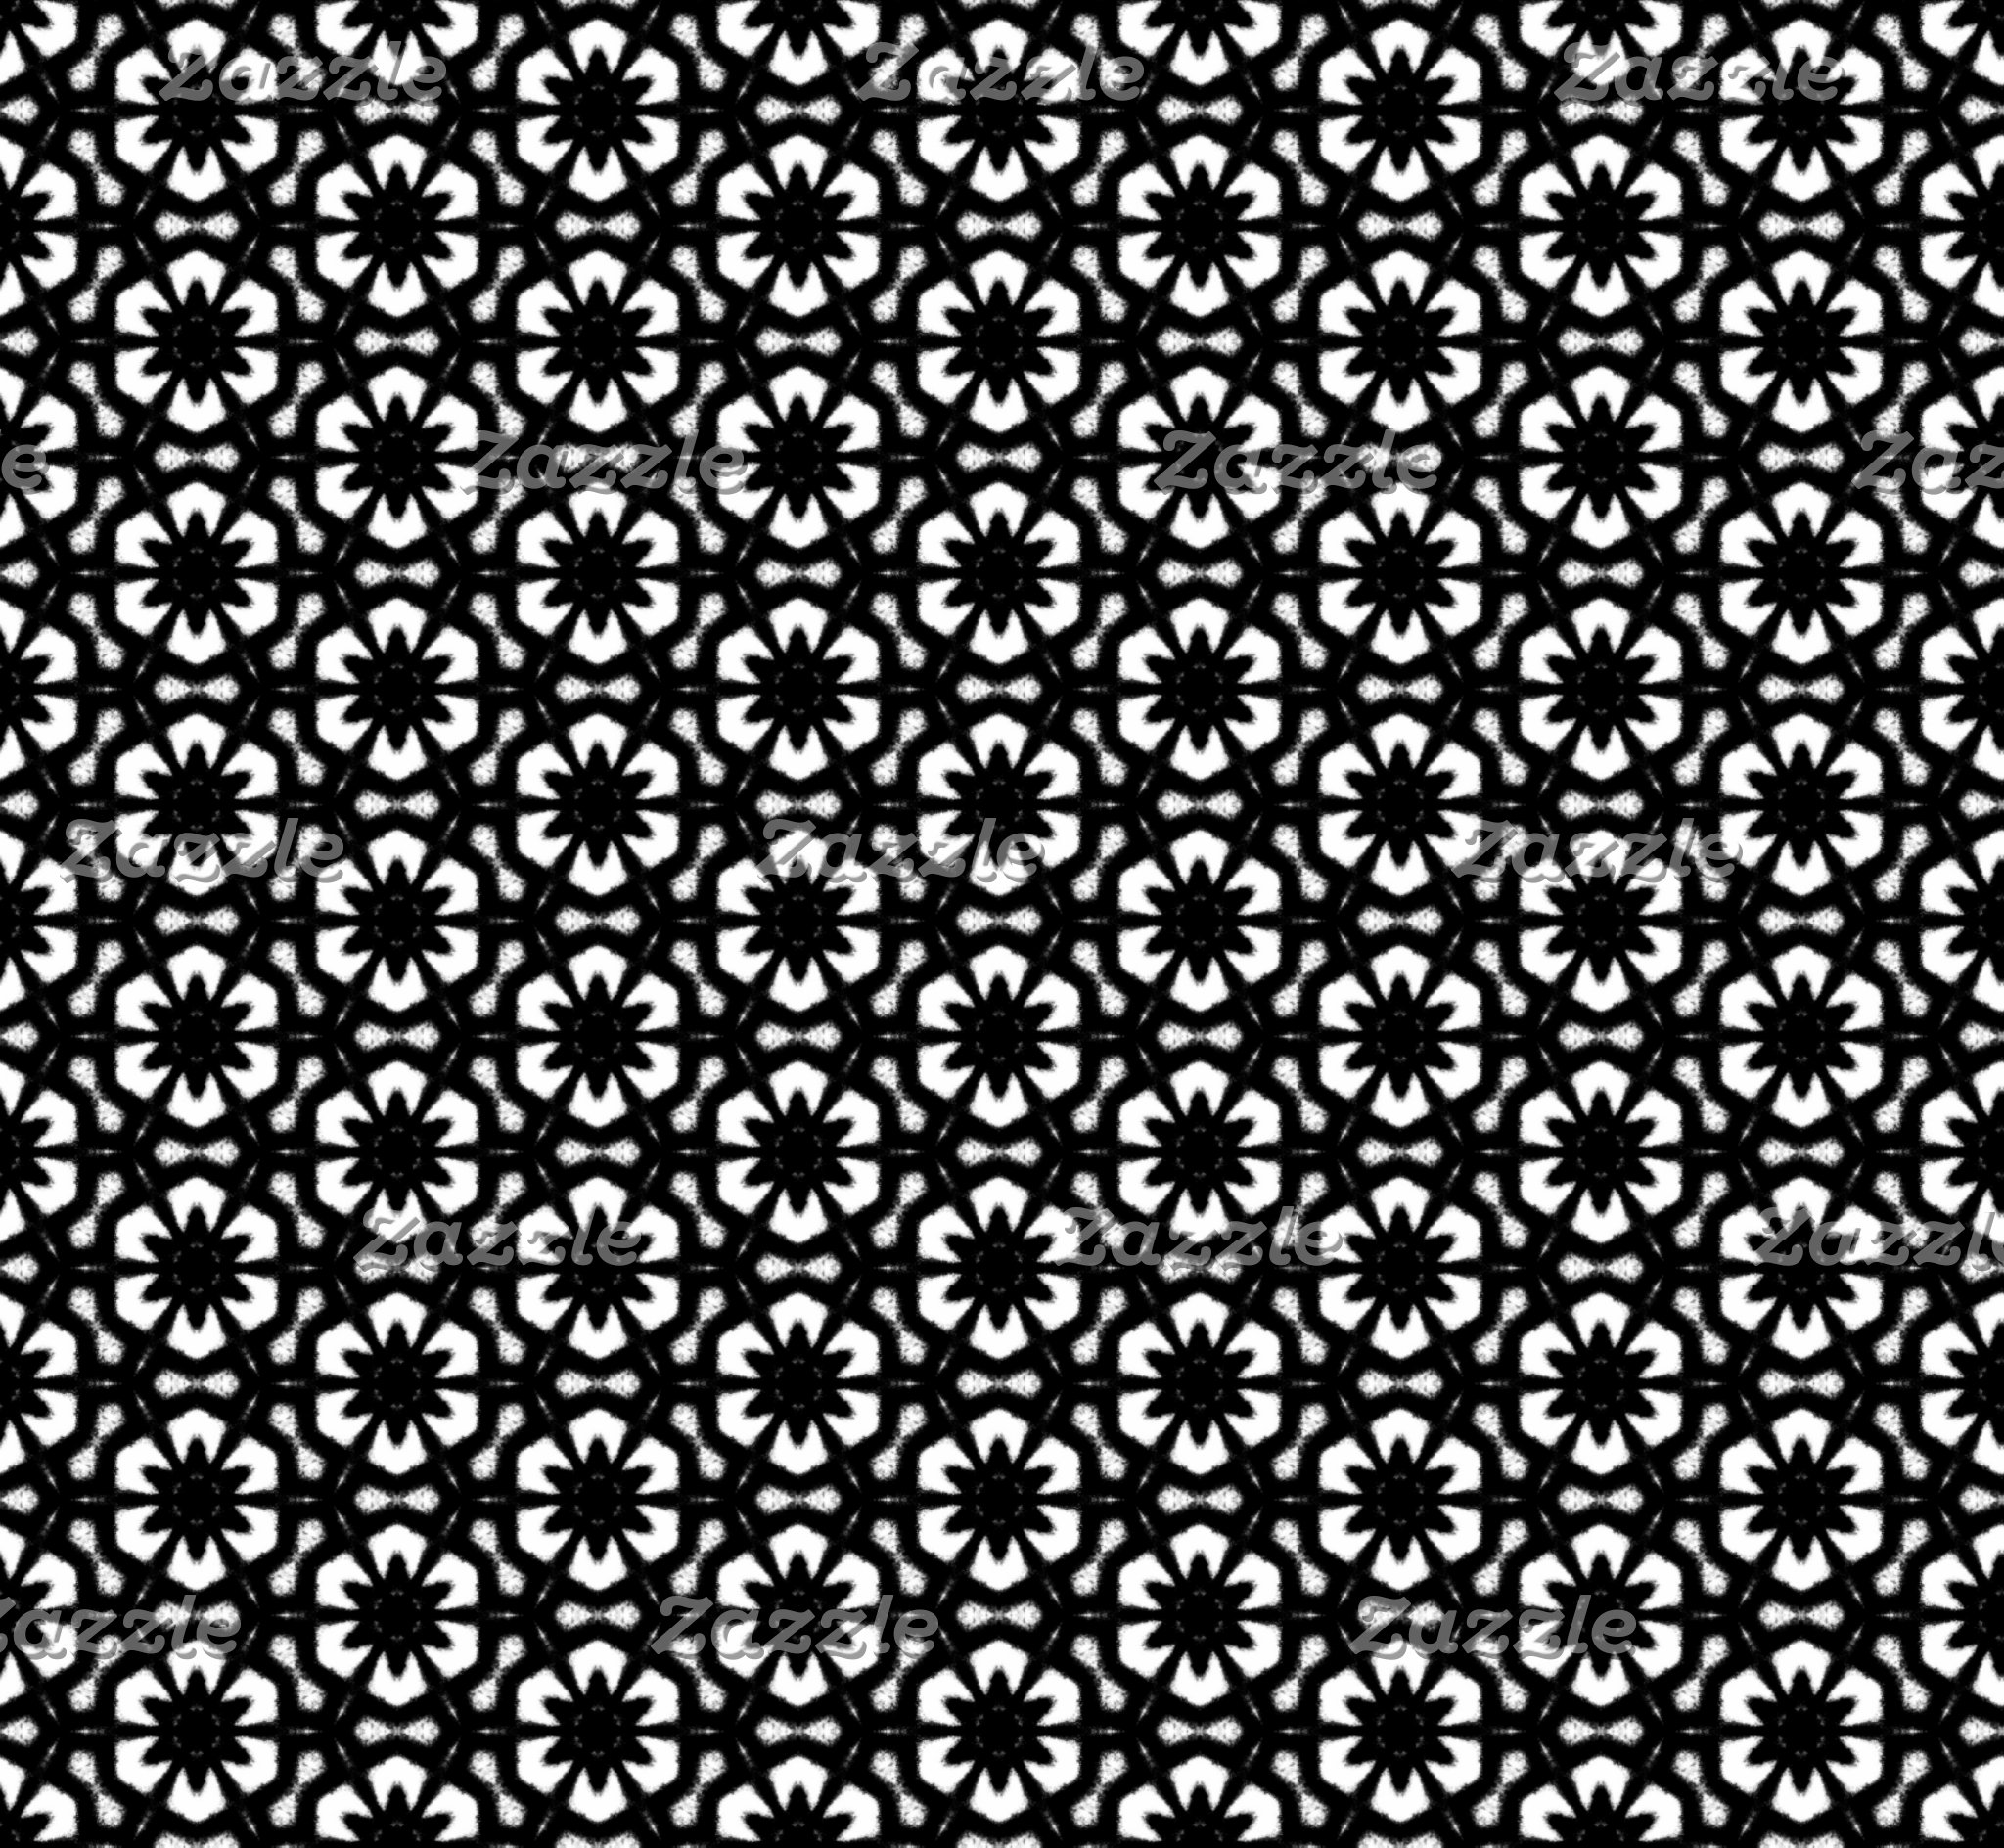 Black and White Patterns | Hexagons II